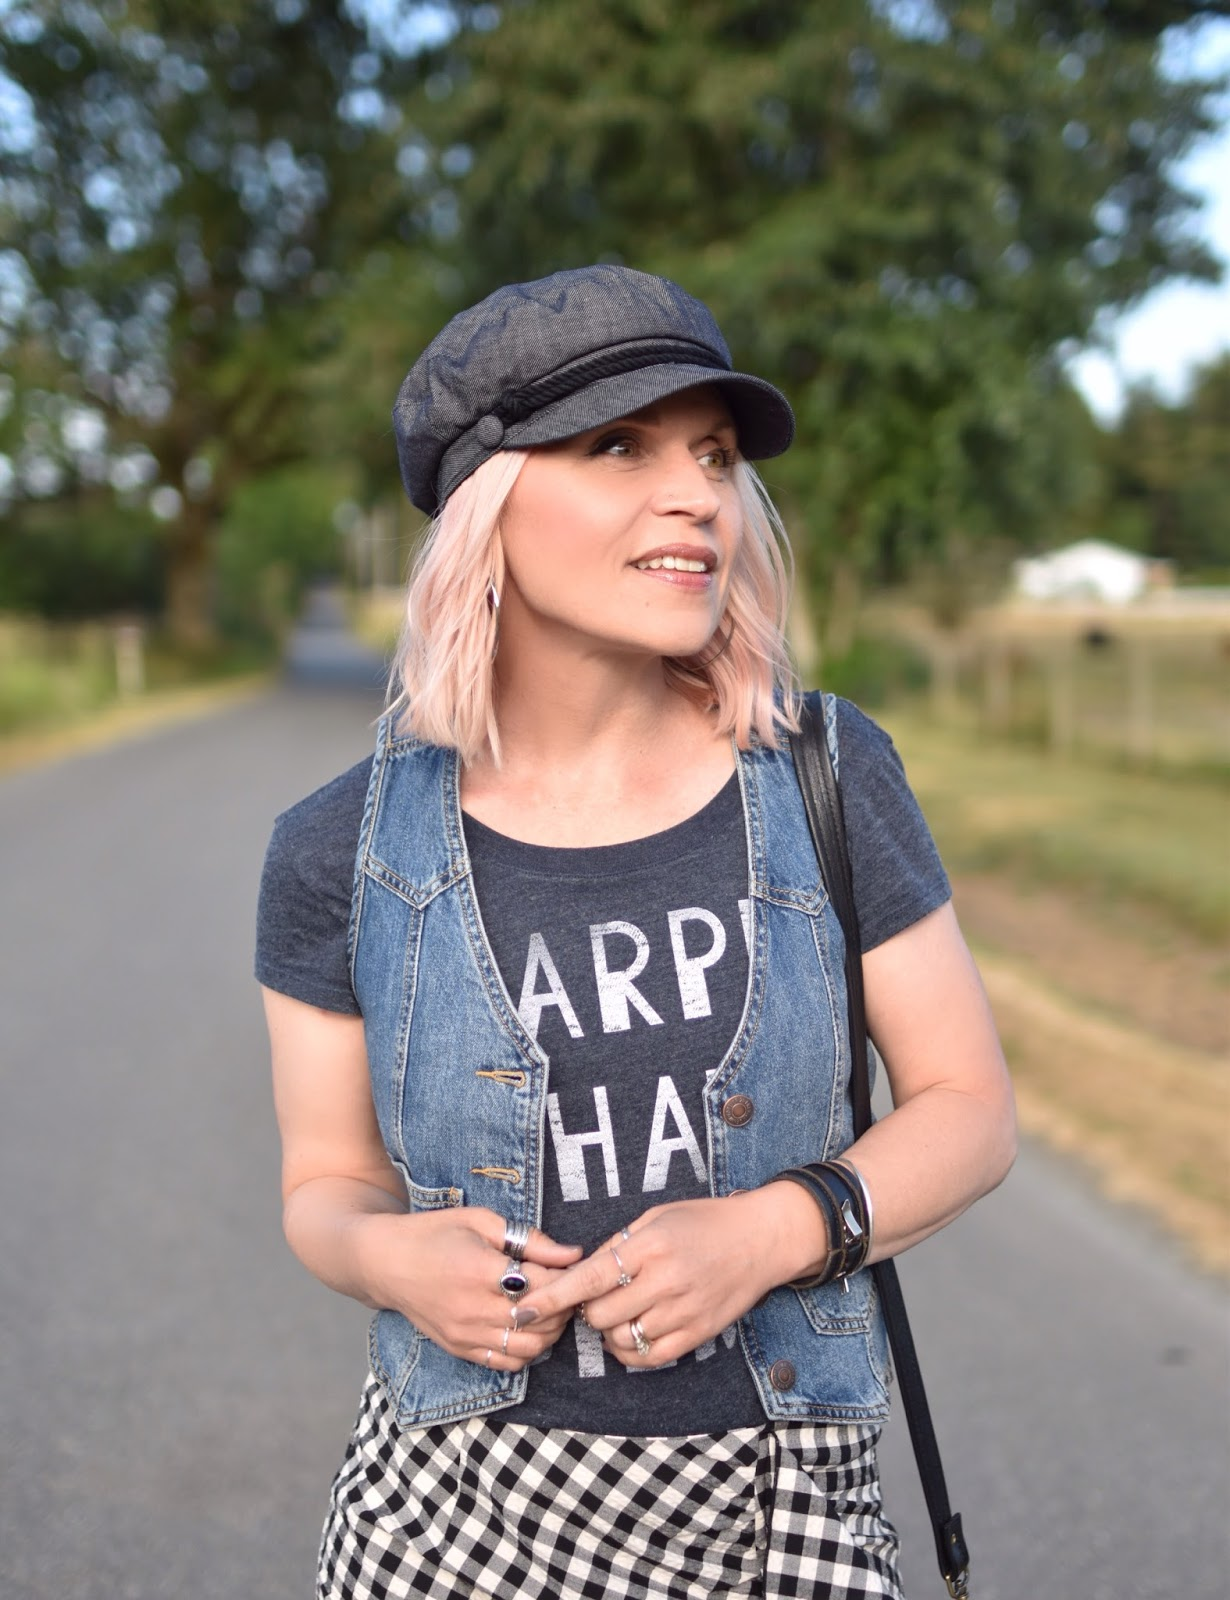 Monika Faulkner personal style inspiration - ruffled gingham skirt, graphic tee, denim vest, baker boy cap